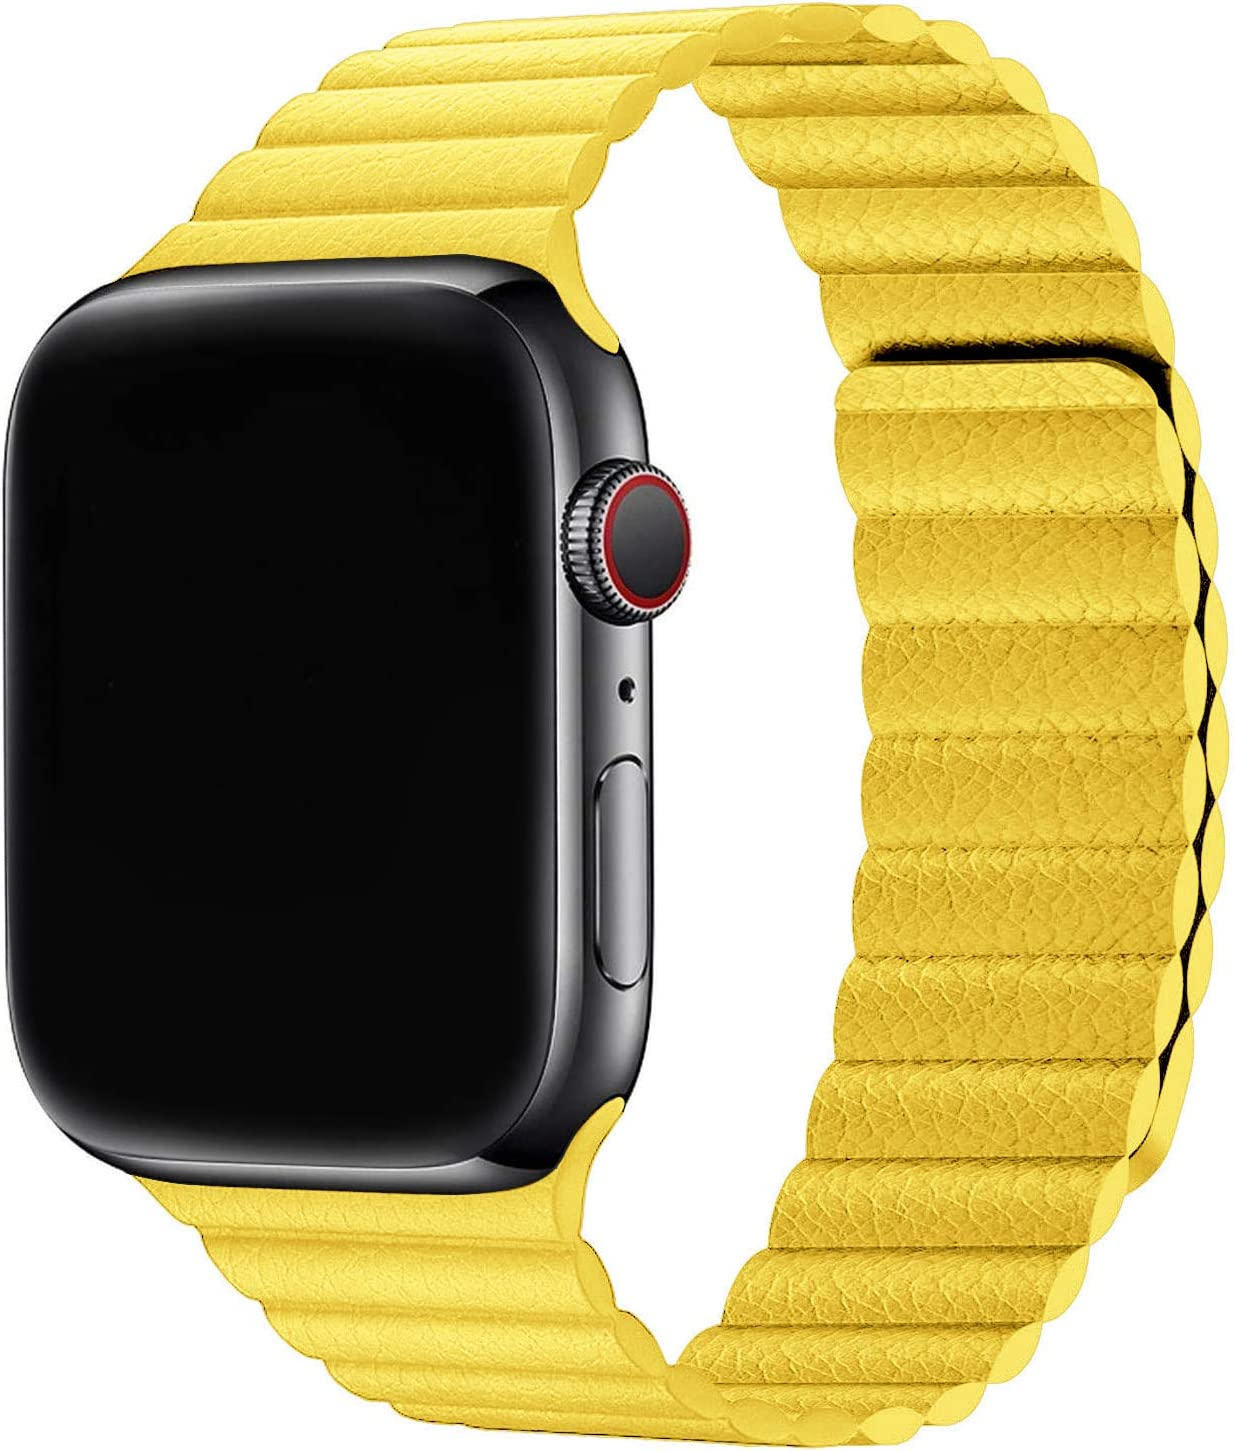 Firsteit Compatible with Apple Watch Leather Band 44mm 42mm 40mm 38mm Adjustable Loop Strap with Magnetic Closure for iWatch Series 6/5/4/3/2/1/SE (Yellow, 38mm/40mm)